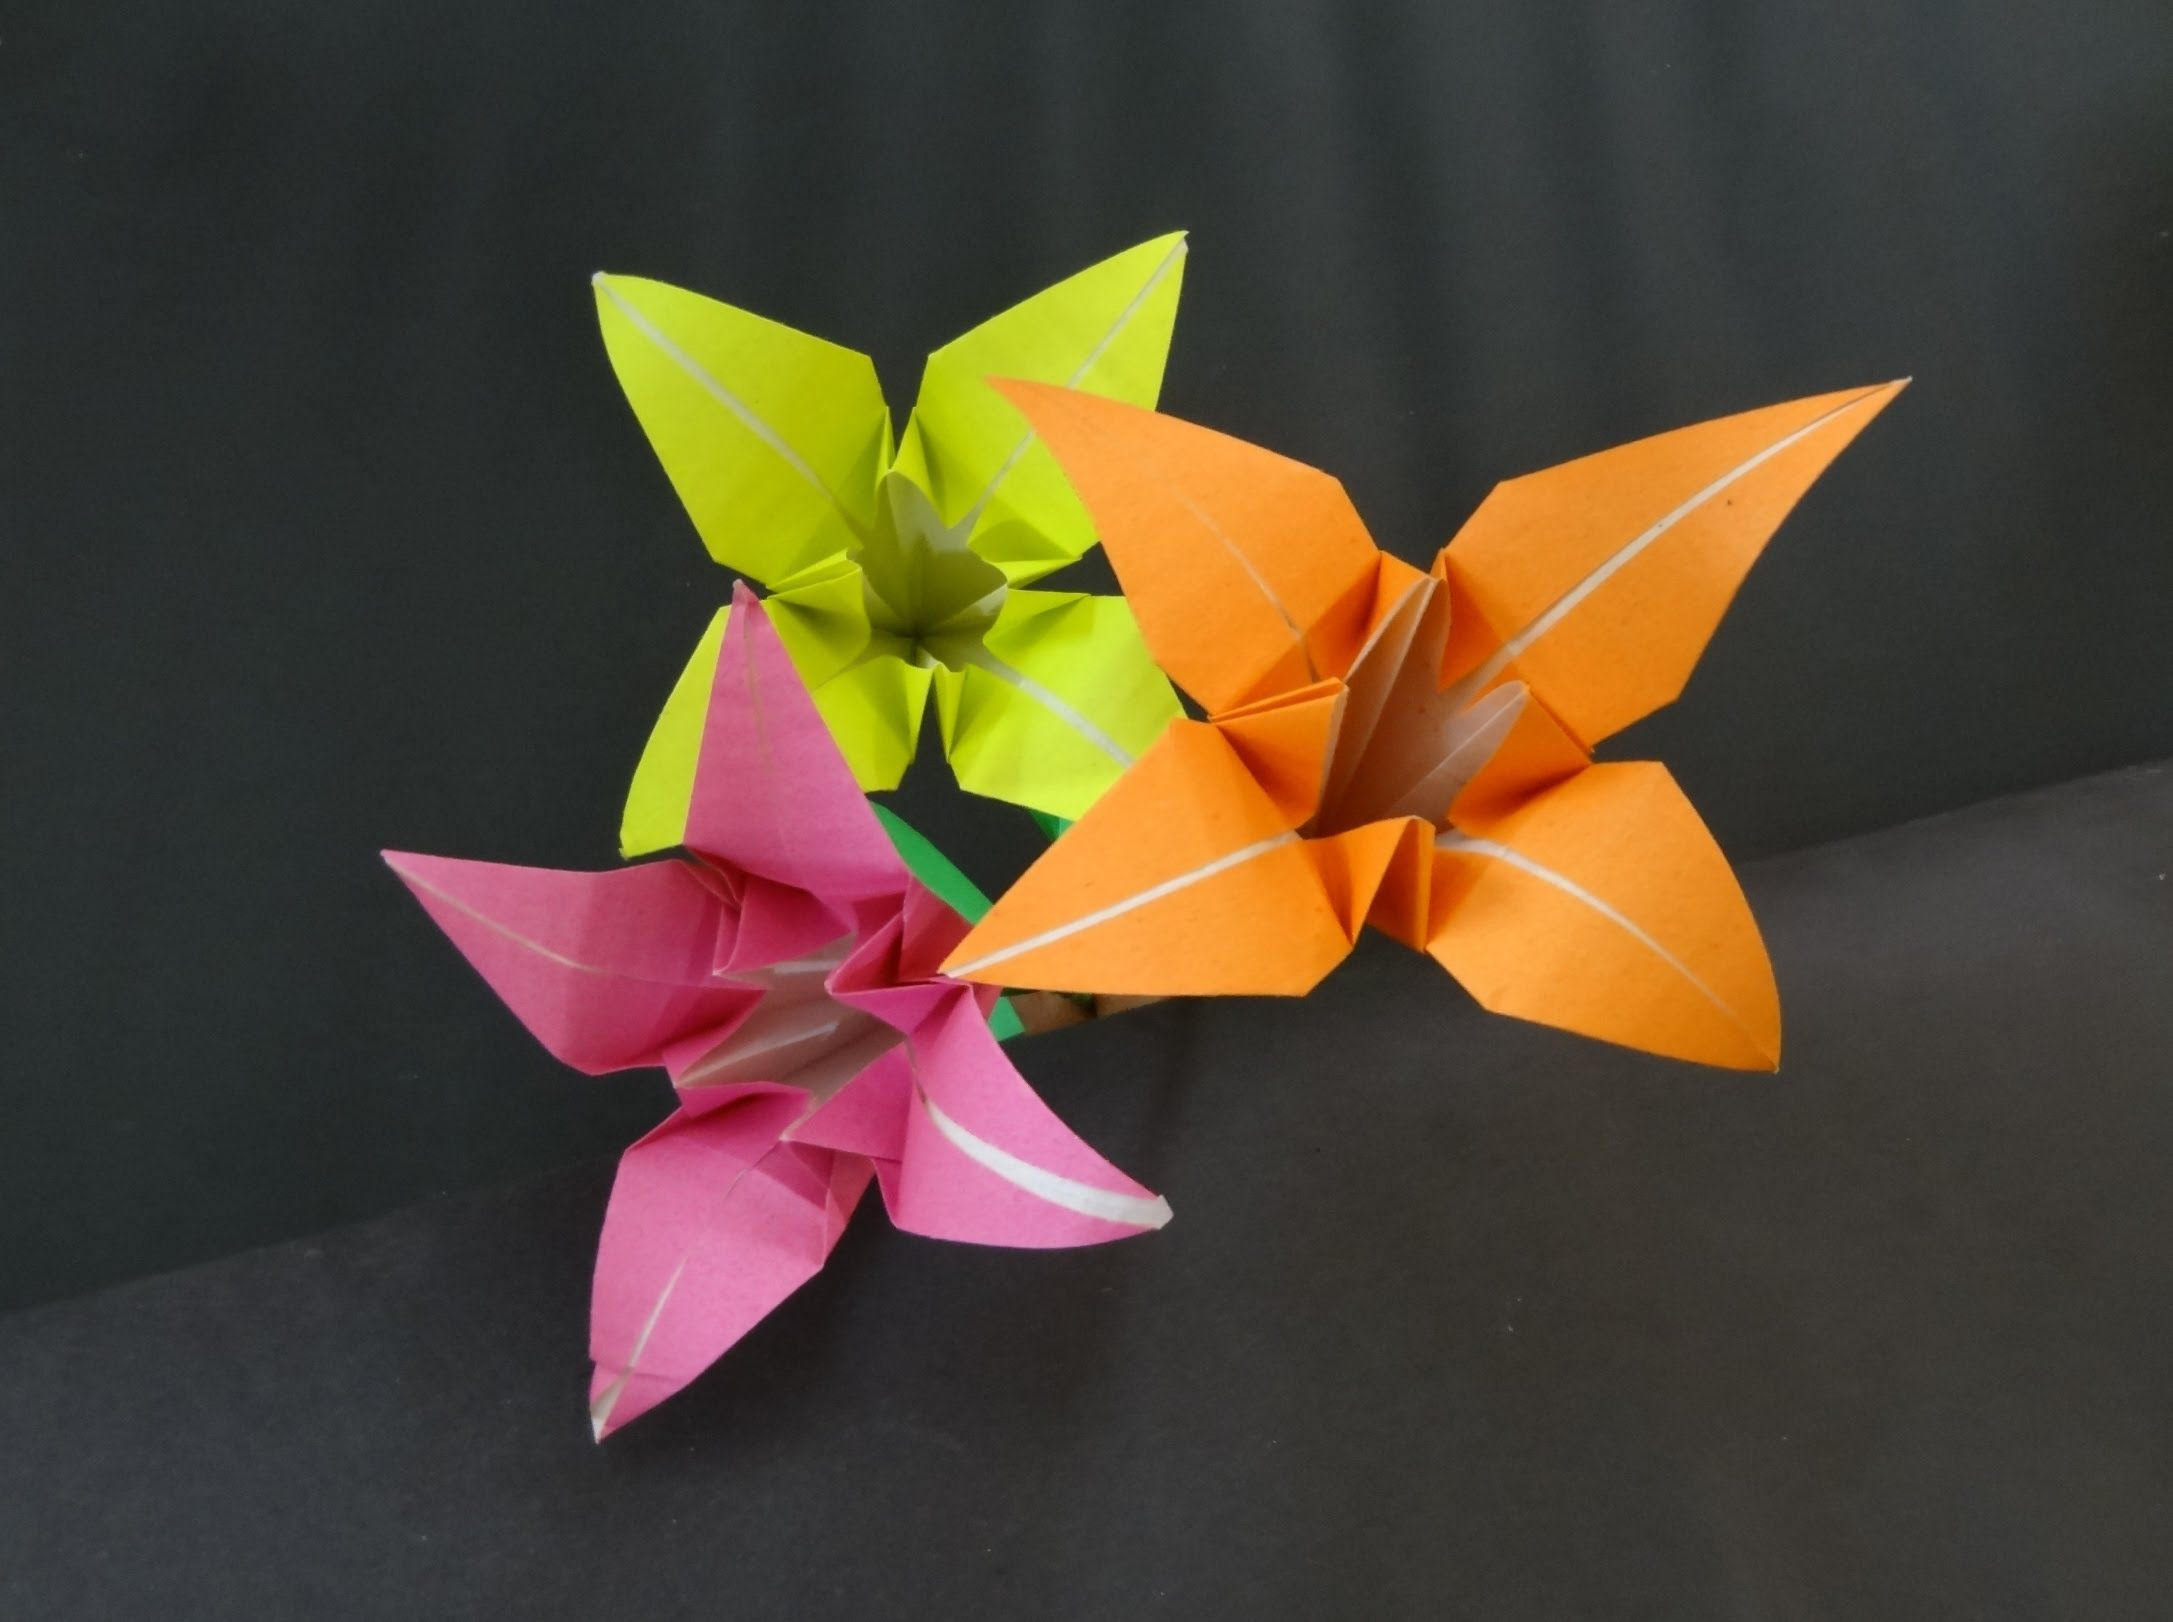 Paper flower tutorial how to fold origami lily flower crafts paper flower tutorial on how to fold origami lily flower this origami lily flower with stick is very beautiful and attractive origami paper flowers like mightylinksfo